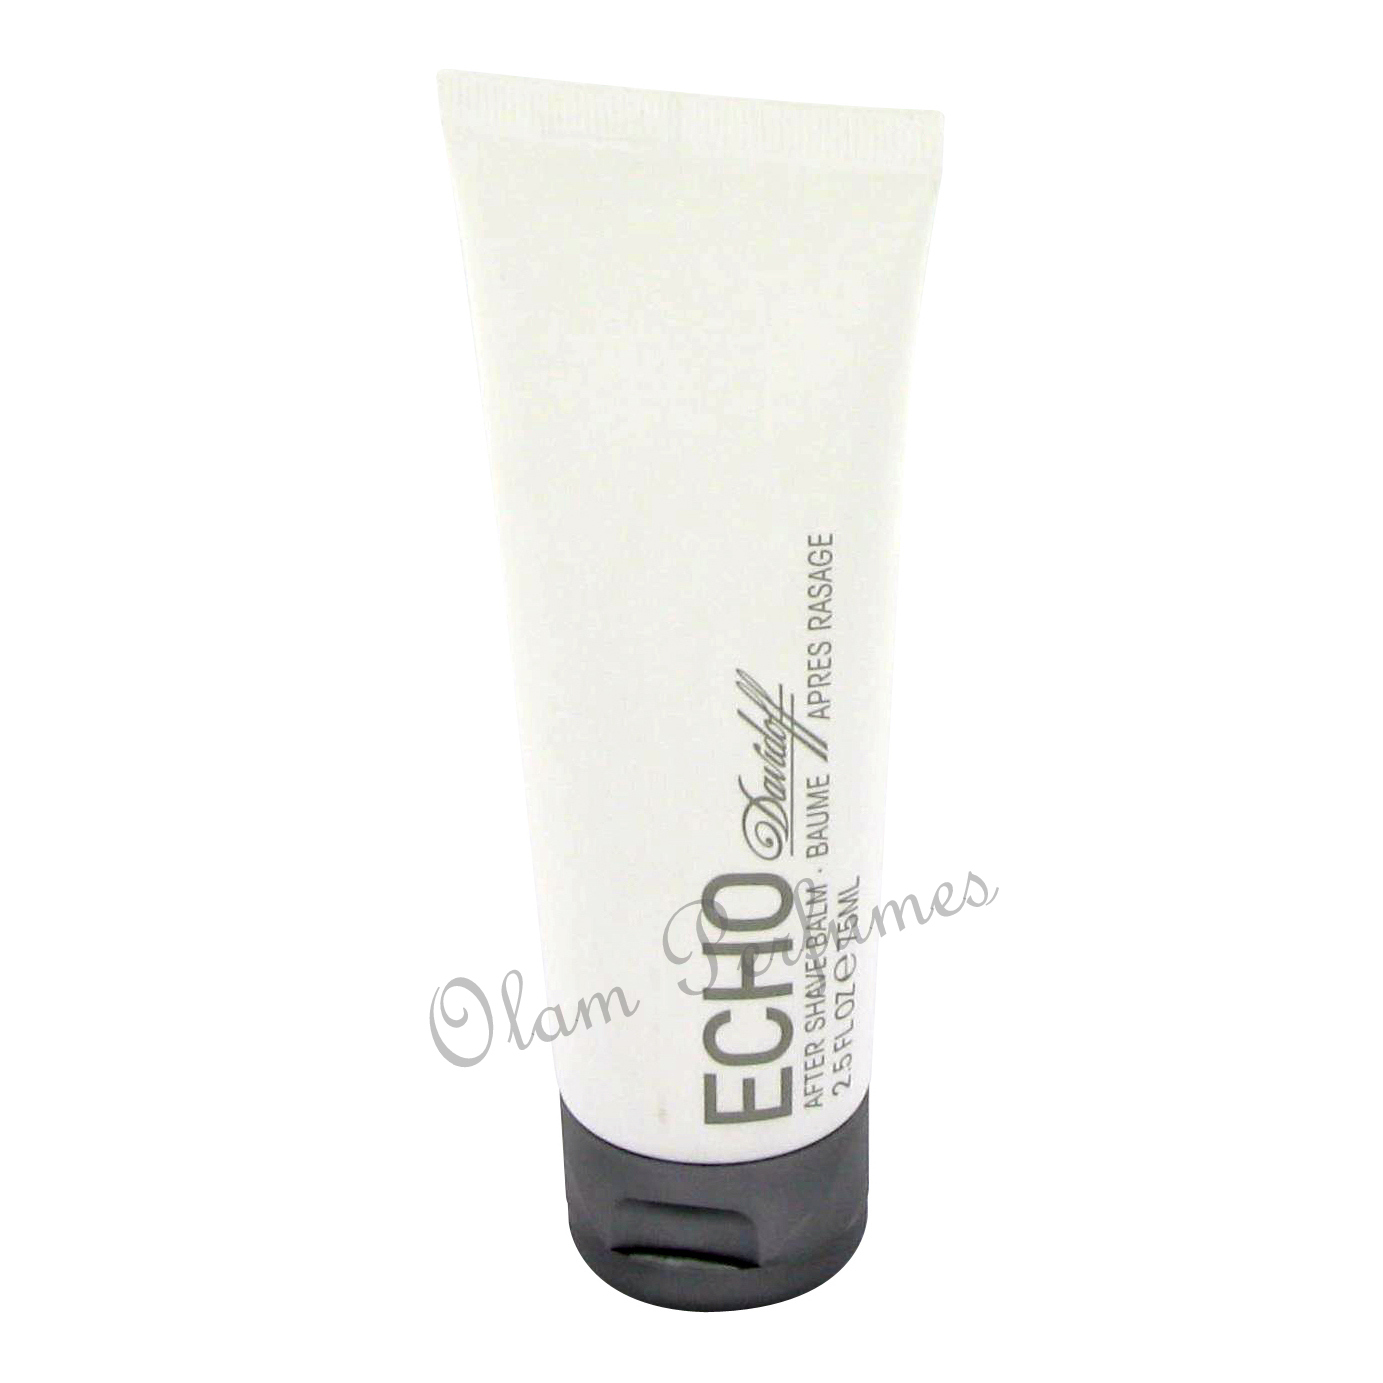 Davidoff Echo After Shave Balm 2.5oz 75ml